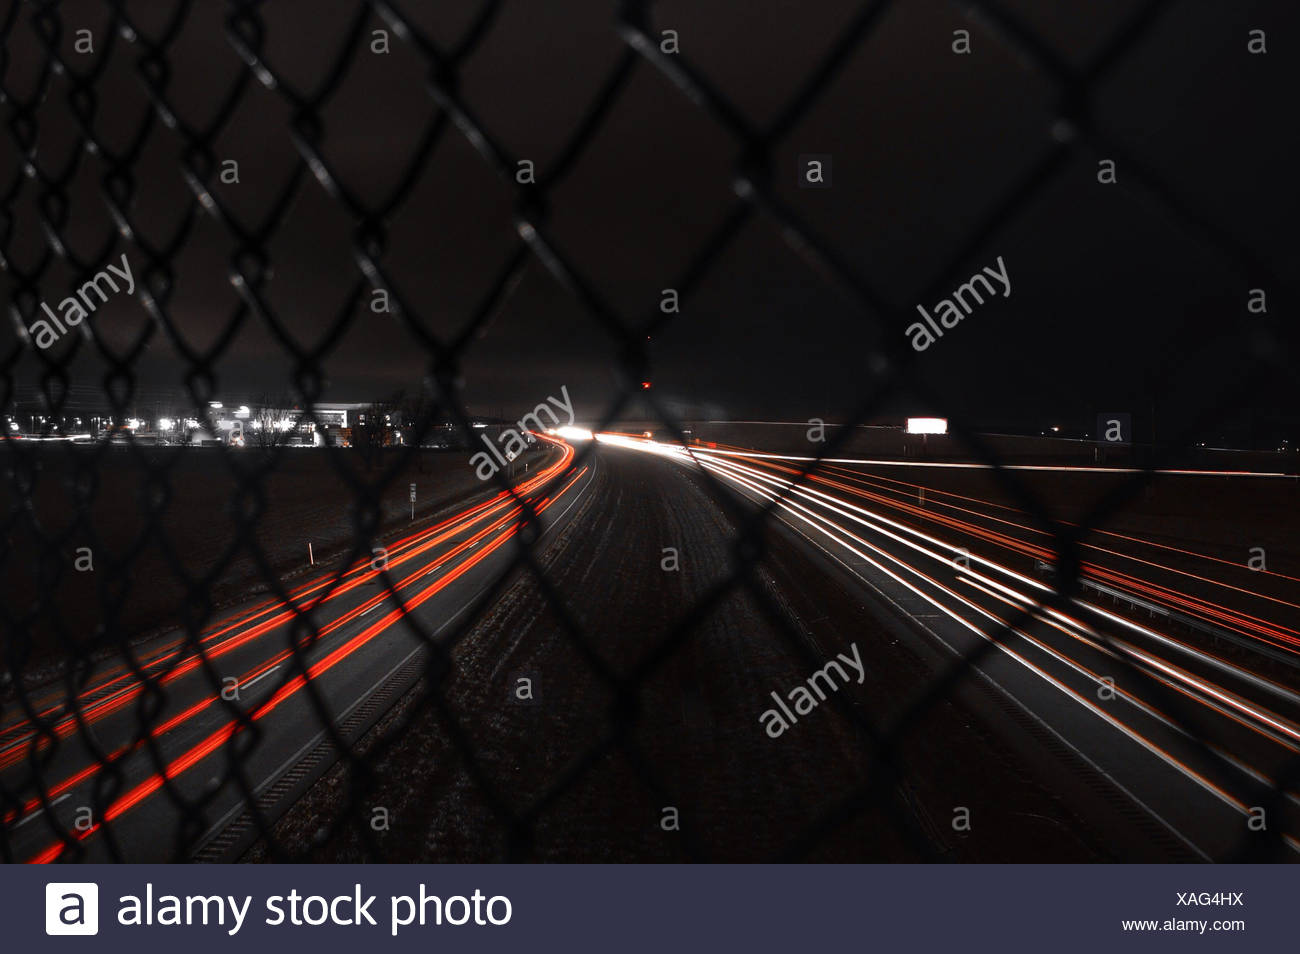 USA, Indiana, Light trails at night - Stock Image